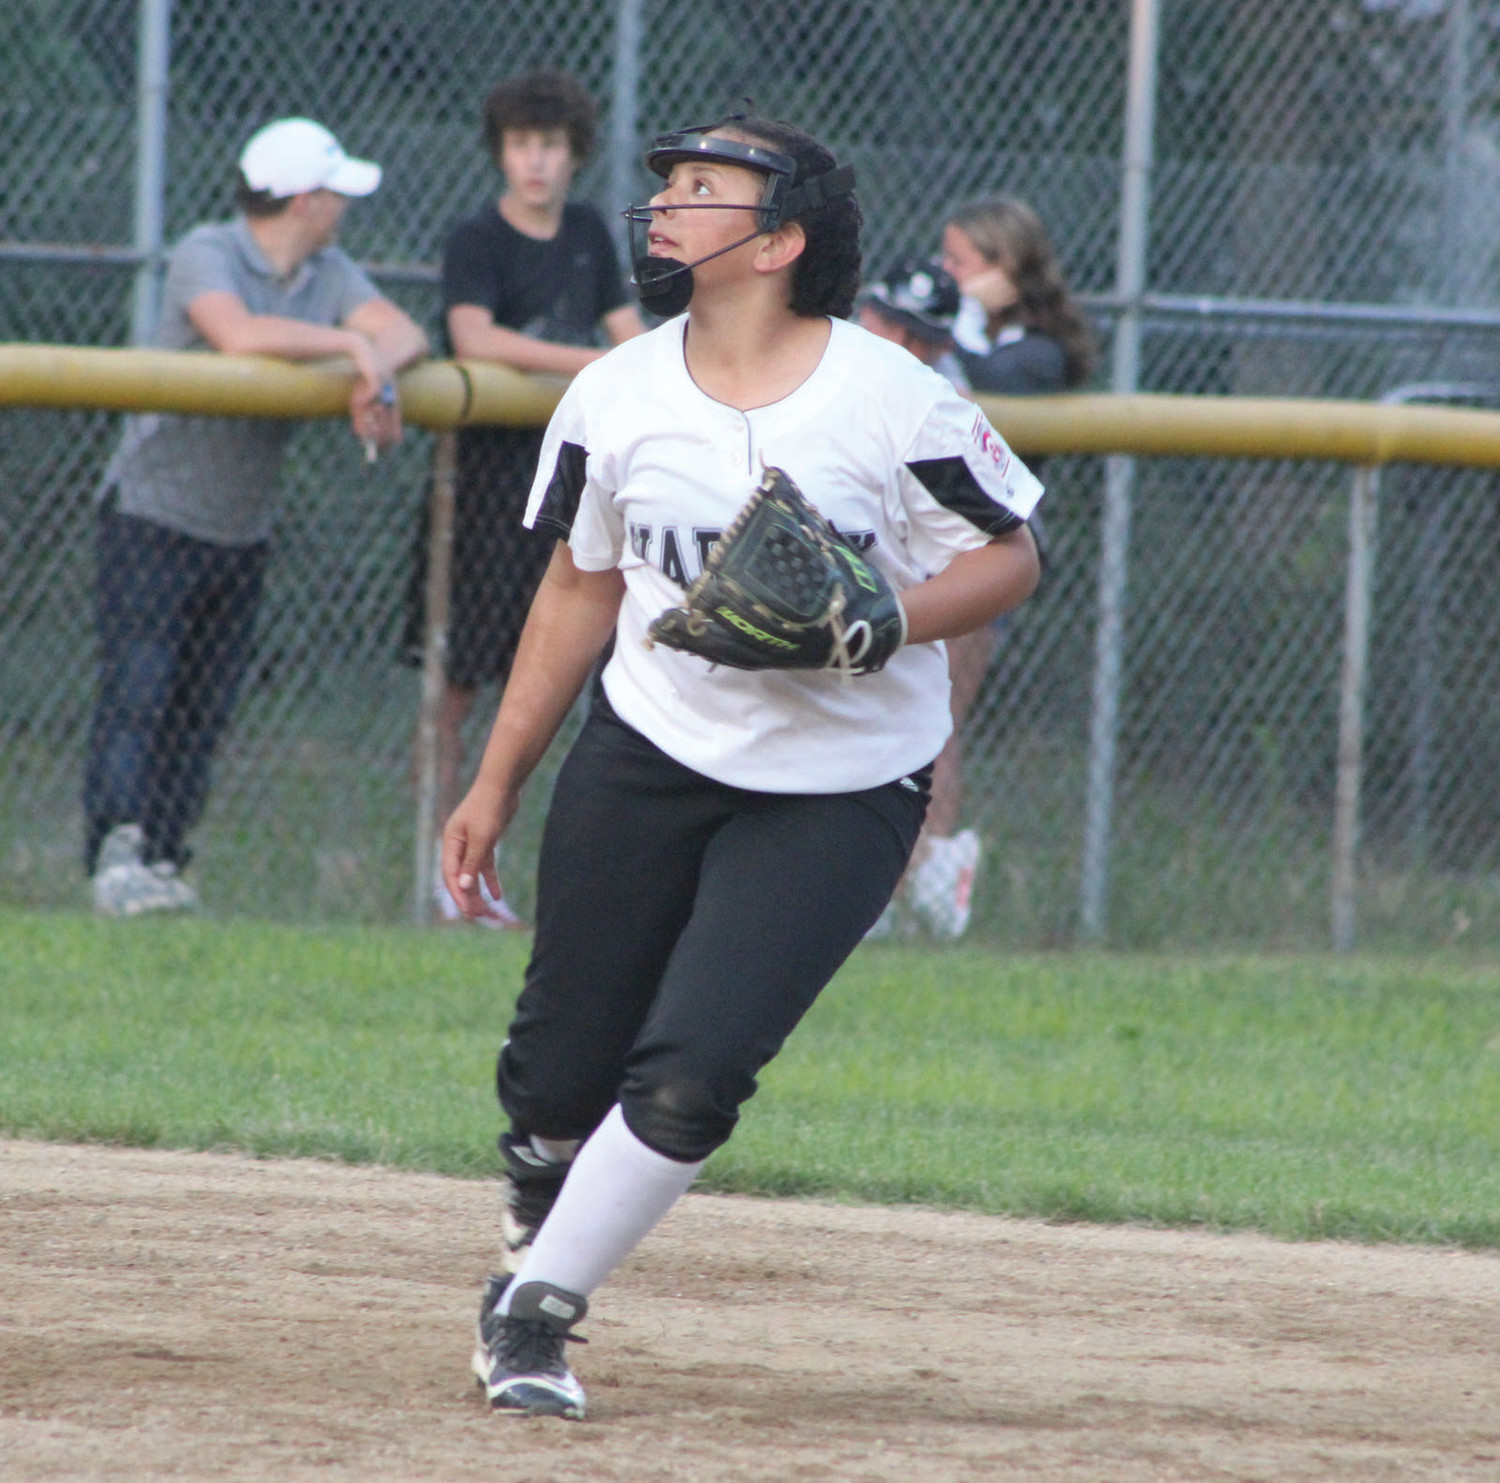 INFIELD FLY: Warwick Little League North shortstop Alayna Medina tracks down a fly ball against Cranston National Budlong on Monday evening. Cranston Budlong topped Warwick North 5-3 to send the 12's to the losers bracket. Warwick North then topped Cumberland 14-0.